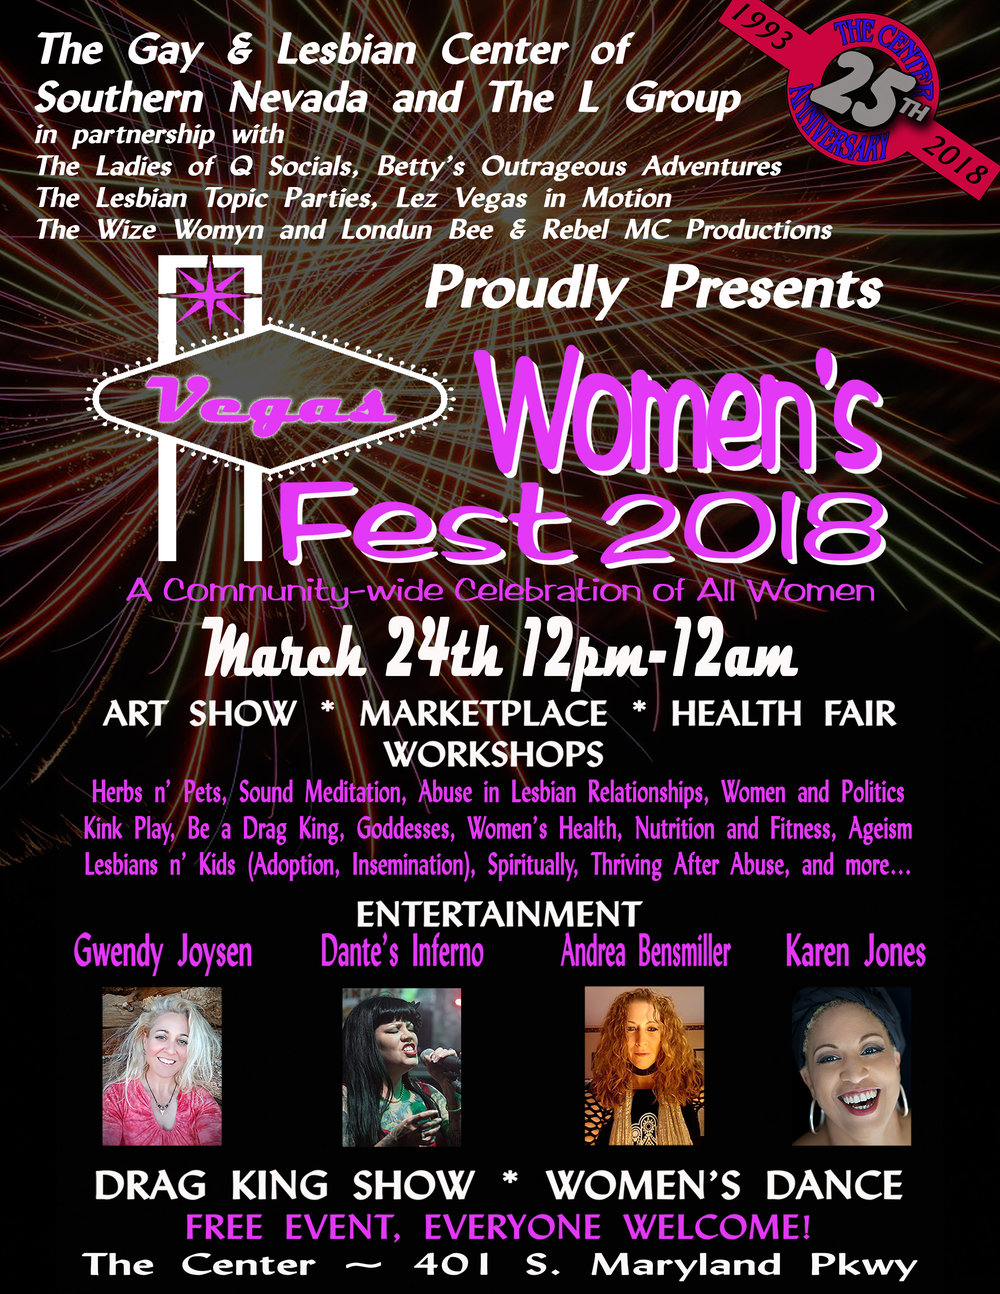 Vegas Women's Fest 2018 Flier Dark Web FINAL.jpg